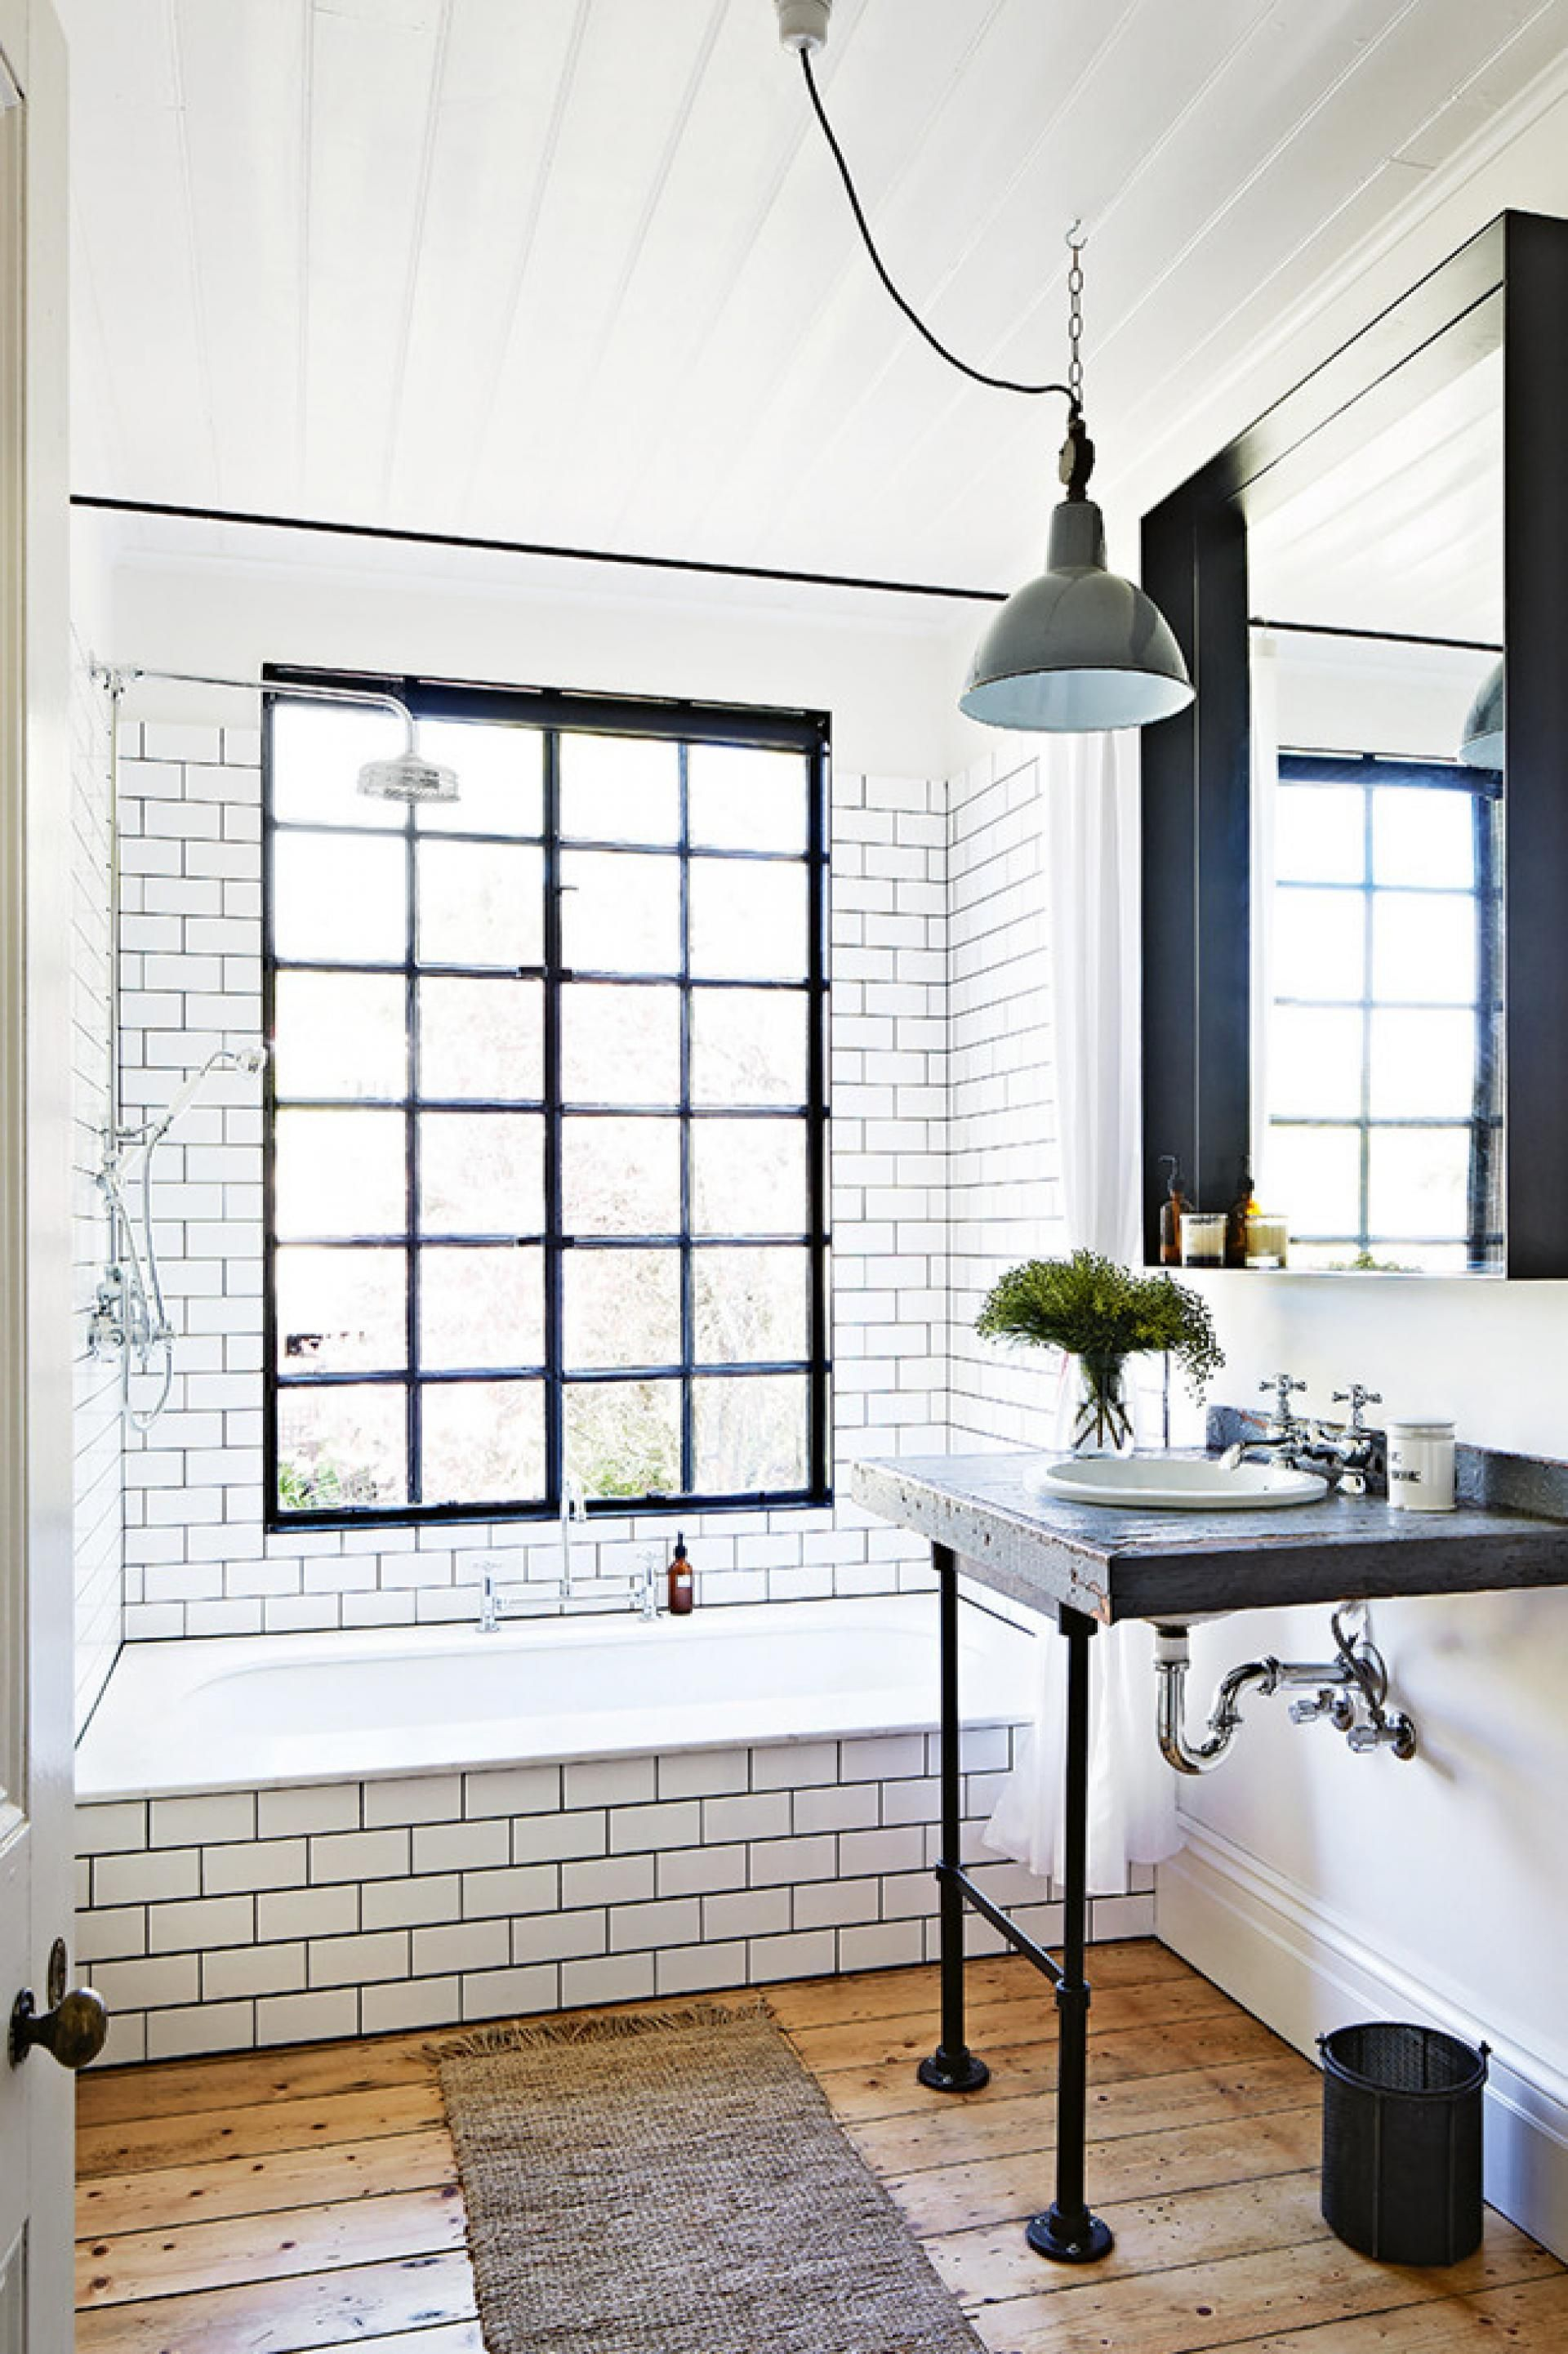 Top 10 Black and White Bathrooms Styling By Julia Green